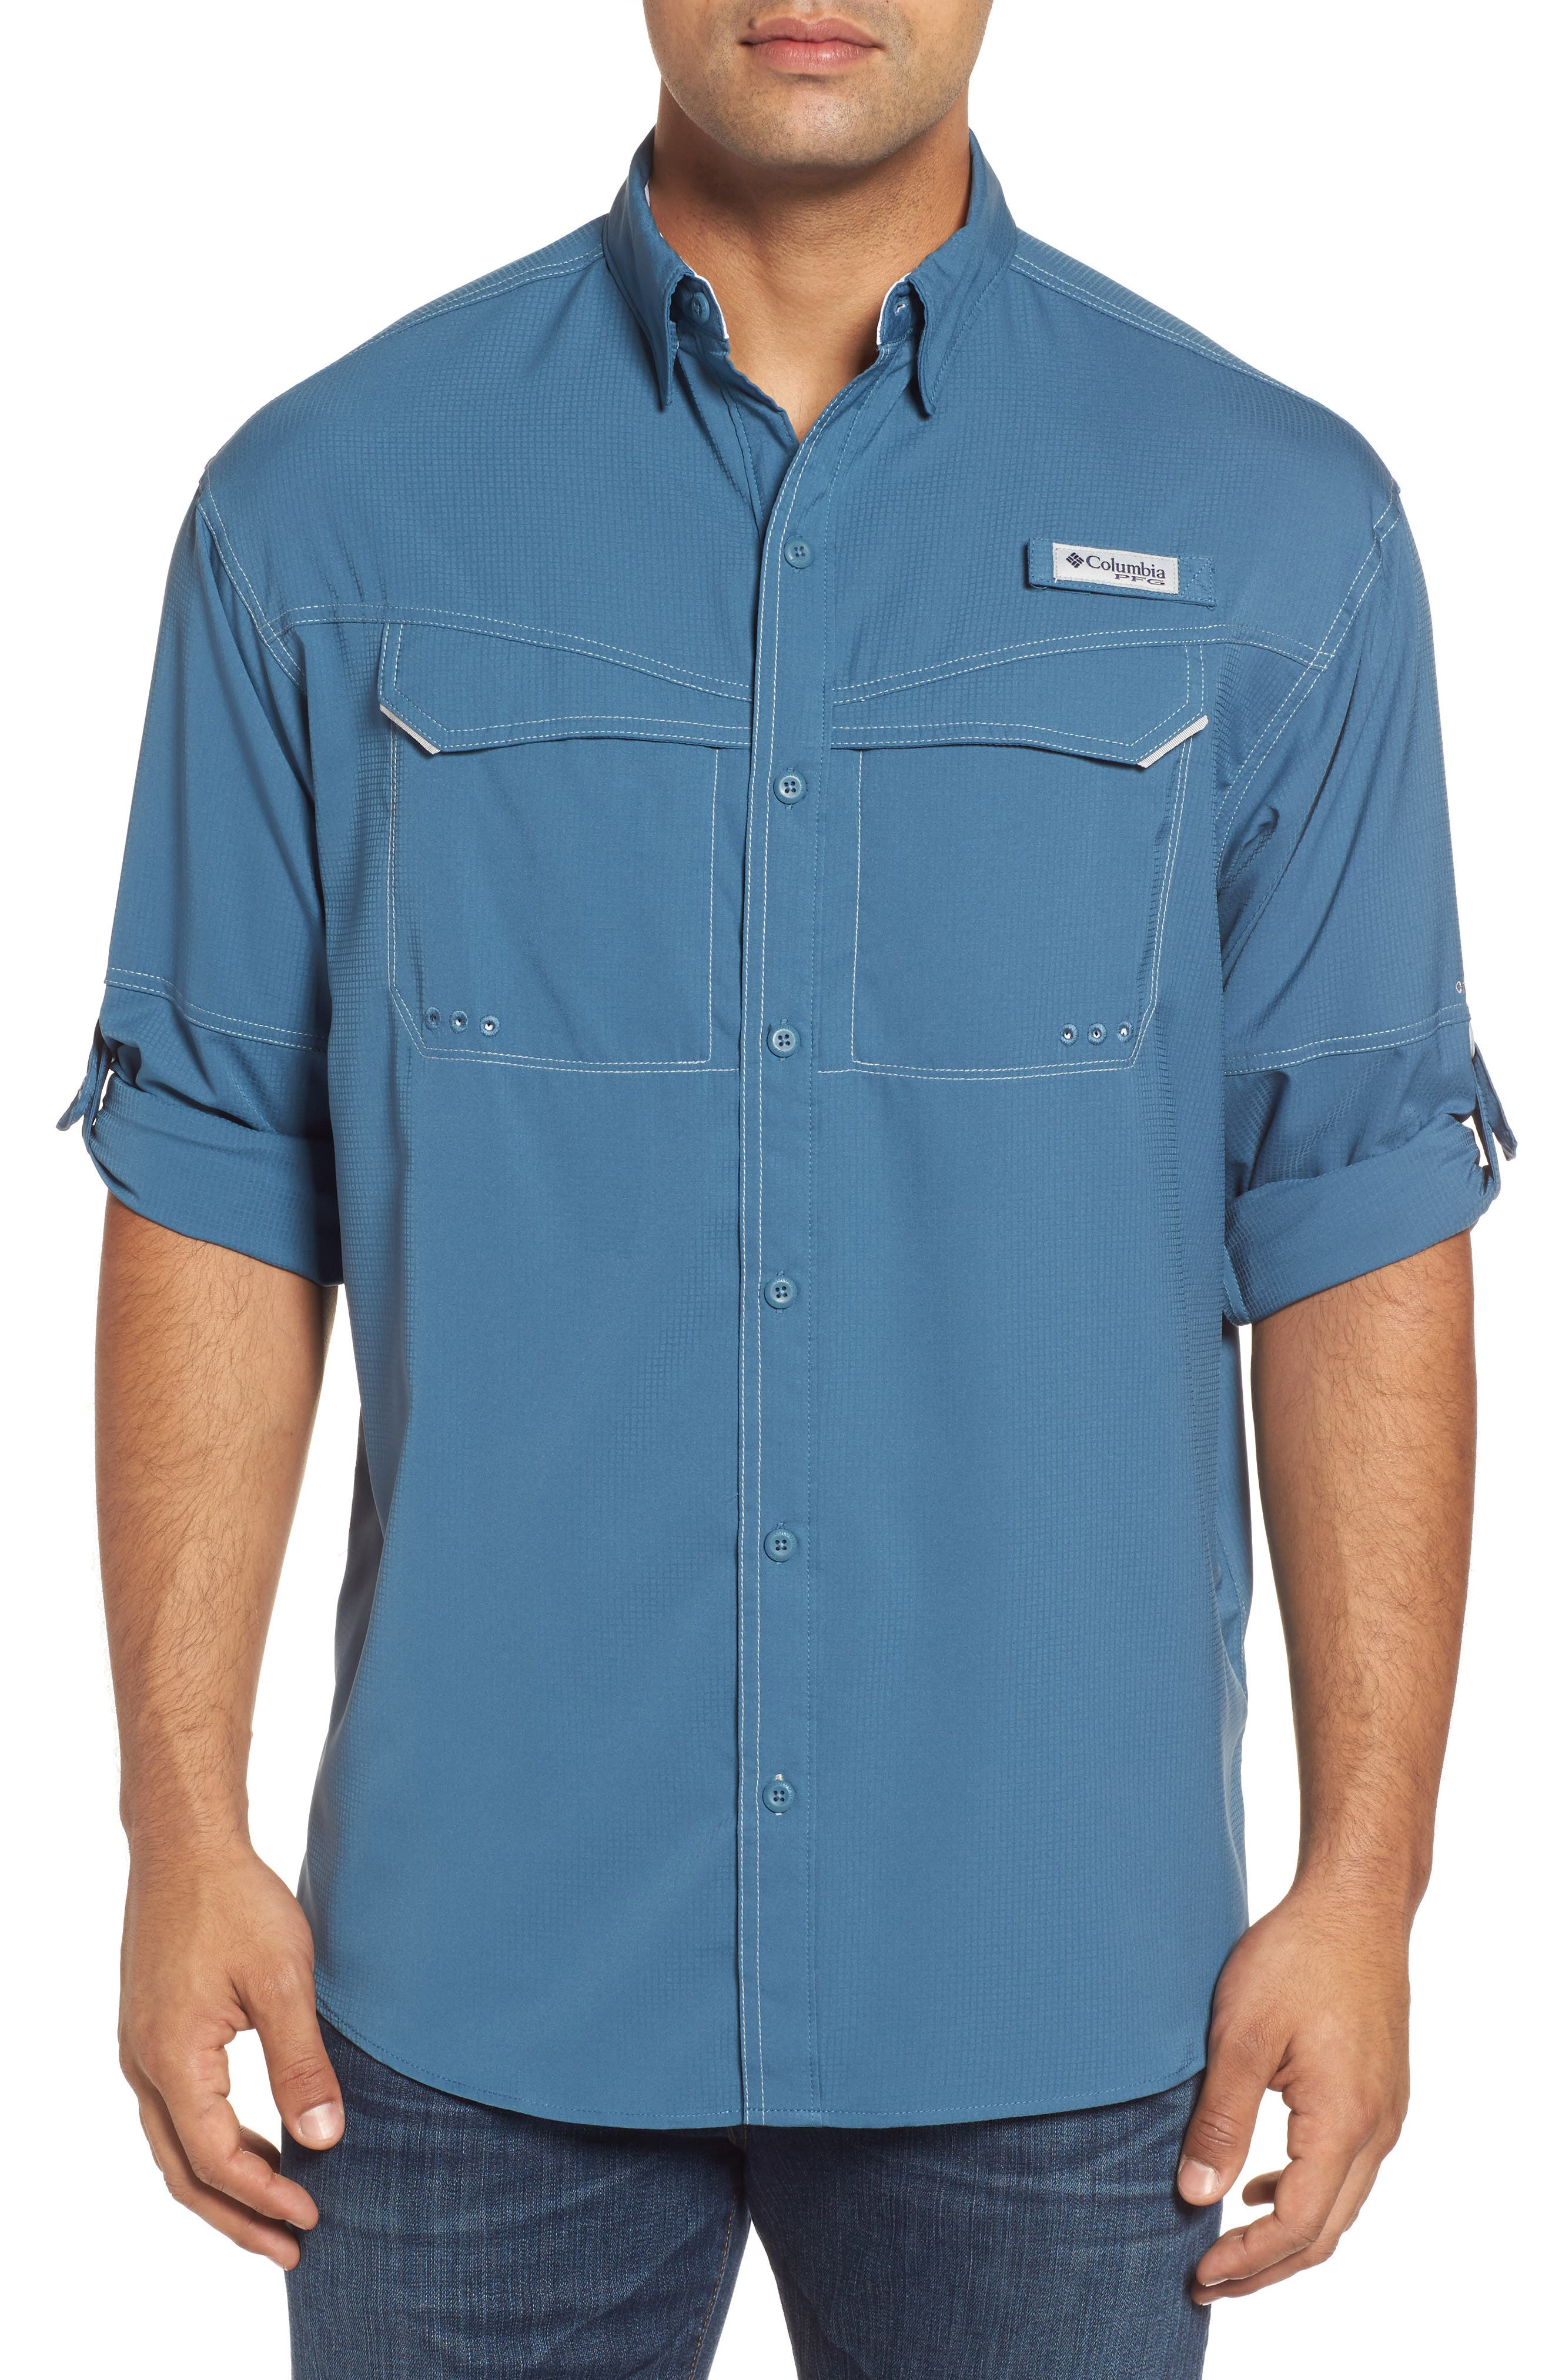 Alternate Image 1 Selected - Columbia Low Drag Offshore Woven Shirt